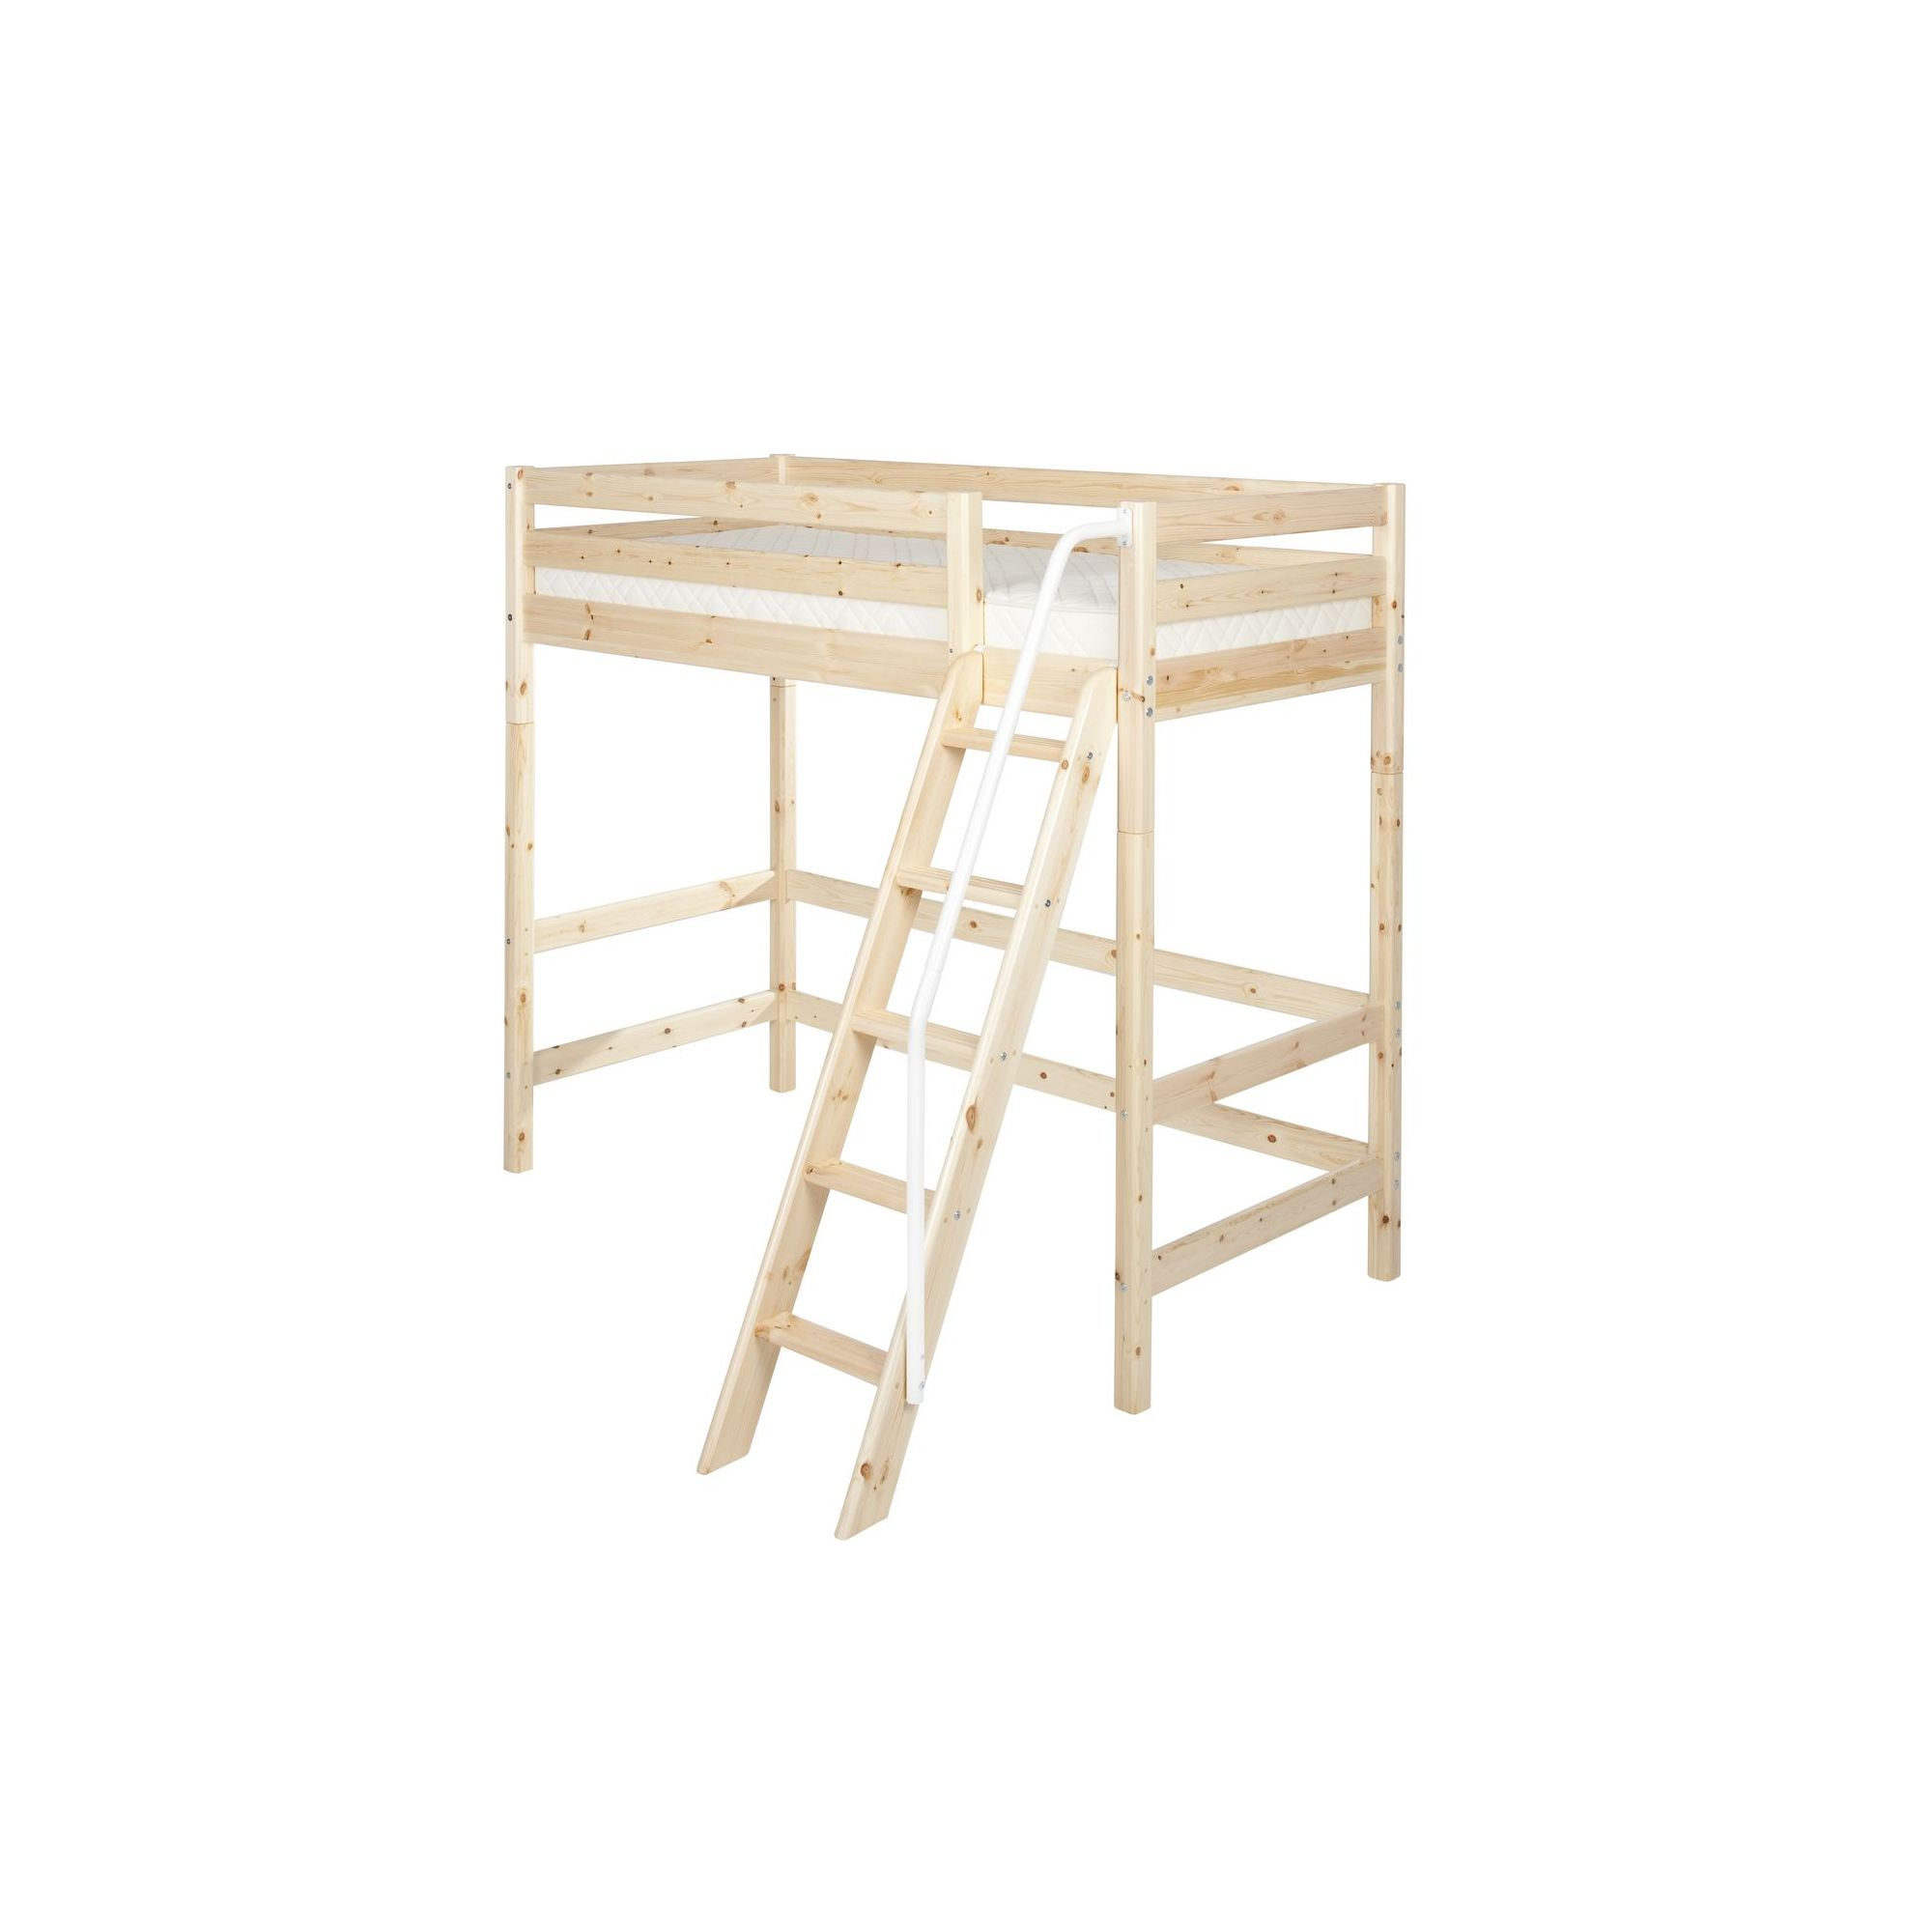 Flexa Classic High Bed with Slanting Ladder and Railing - White at Tesco Direct